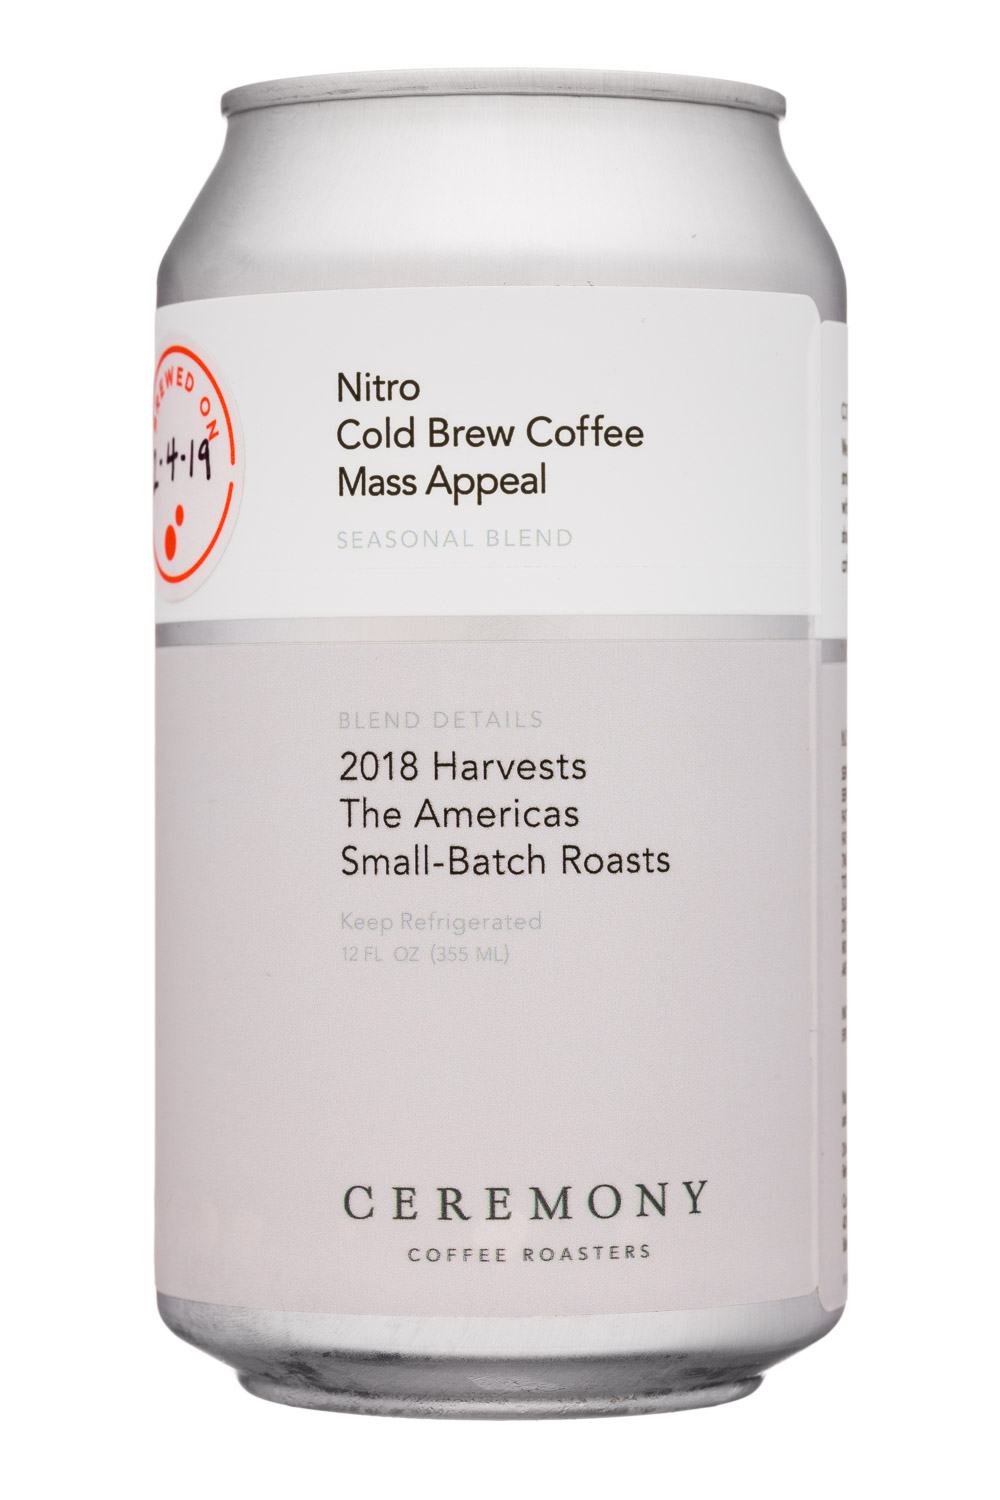 Ceremony Coffee Roasters: CeremonyCoffee-12oz-NitroColdBrew-Front